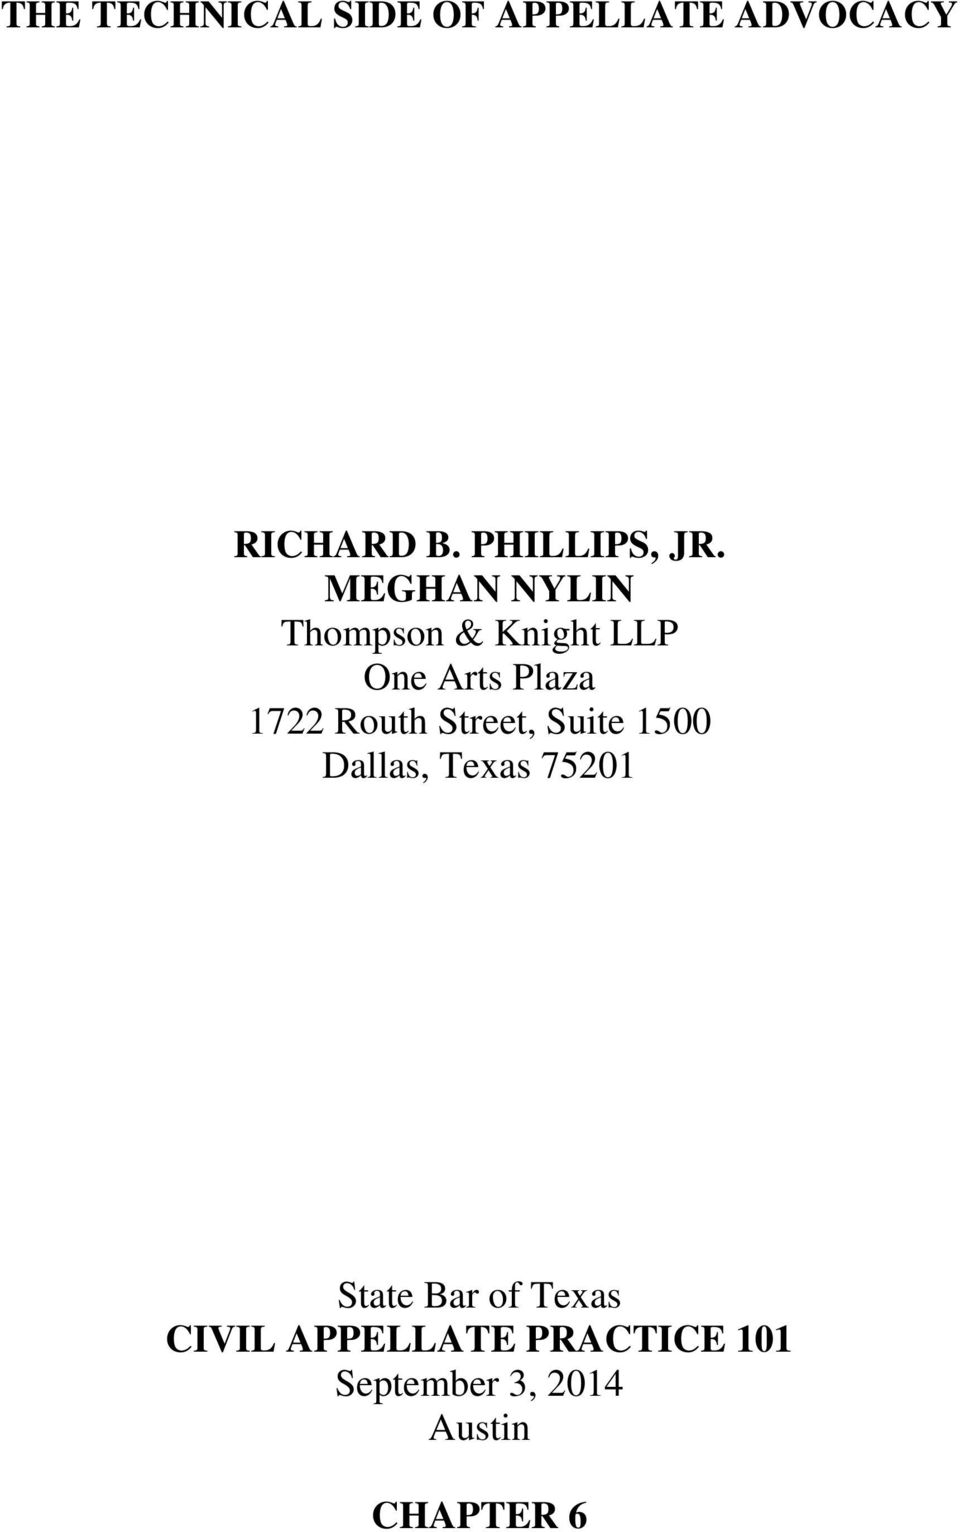 MEGHAN NYLIN Thompson & Knight LLP One Arts Plaza 1722 Routh